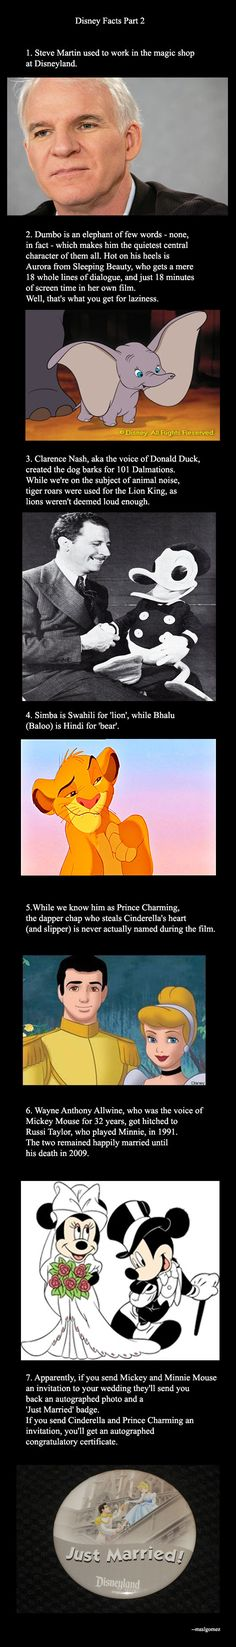 Disney Facts Part 2 didn't know the first